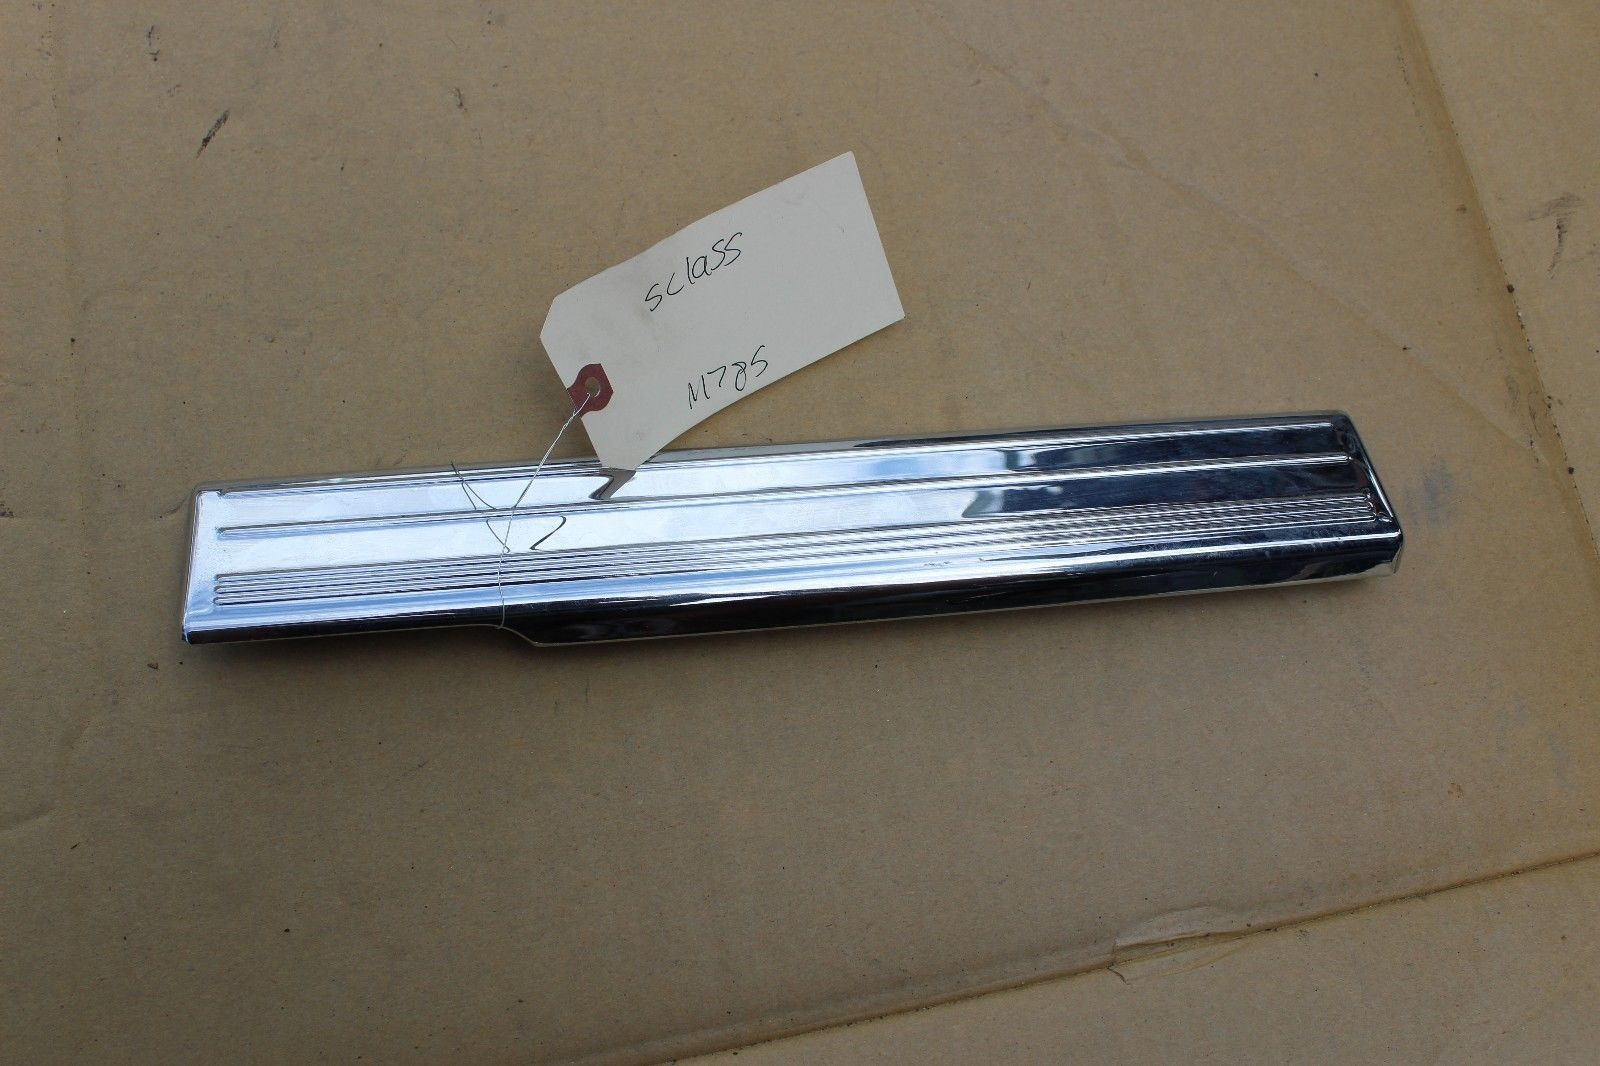 Primary image for 03-06 w220 MERCEDES S430 S500 REAR DRIVER LEFT CHROME DOOR SILL TRIM M785